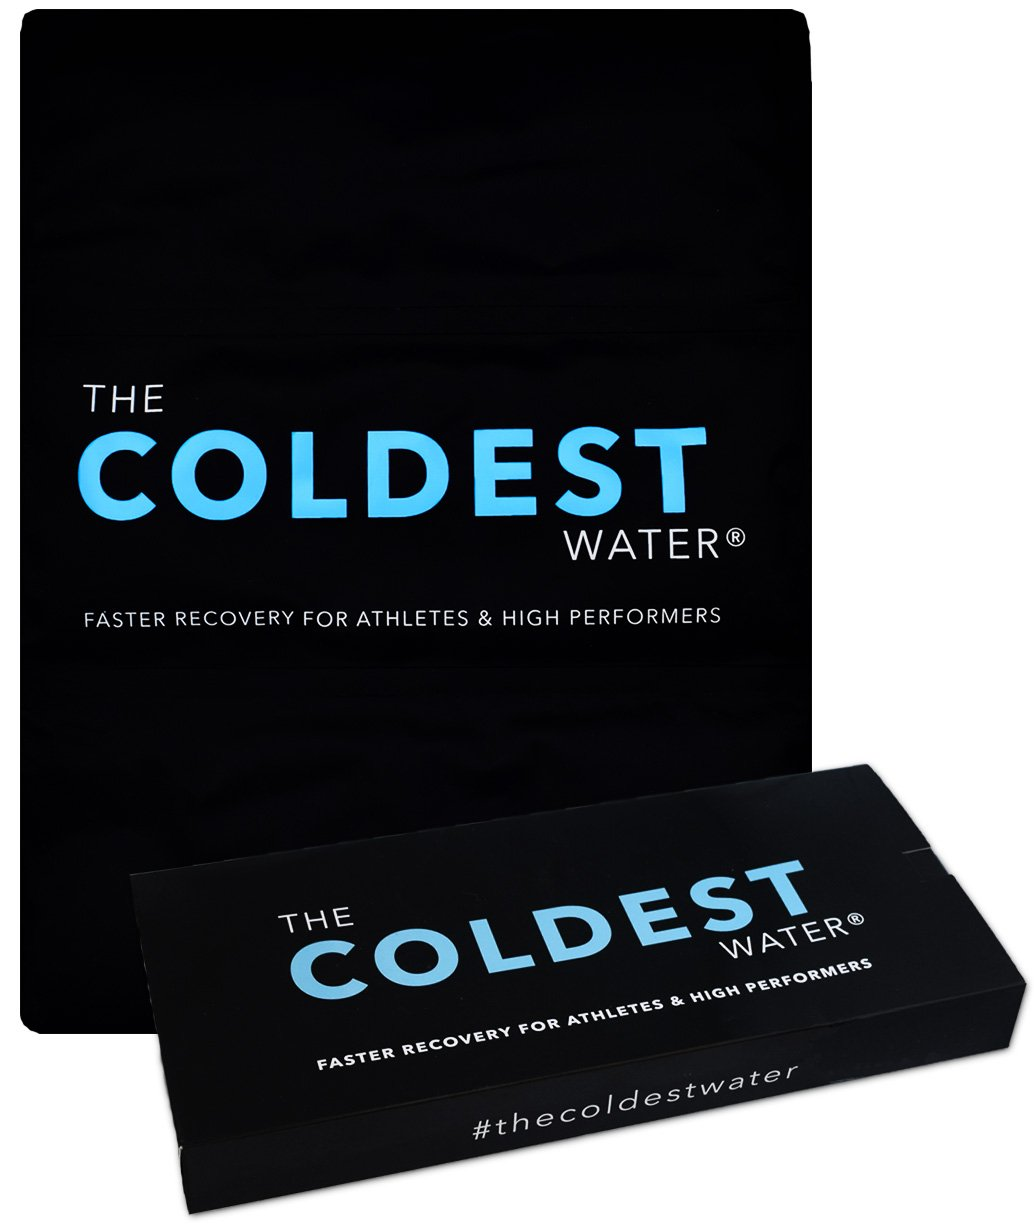 The Coldest Ice Pack Gel Reusable Flexible Therapy Best For Back Pain Leg Arm Knee Shoulder Sciatic Nerve Recovery Medical Grade X-Large Big Compress 15'' x 12'' by The Coldest Water